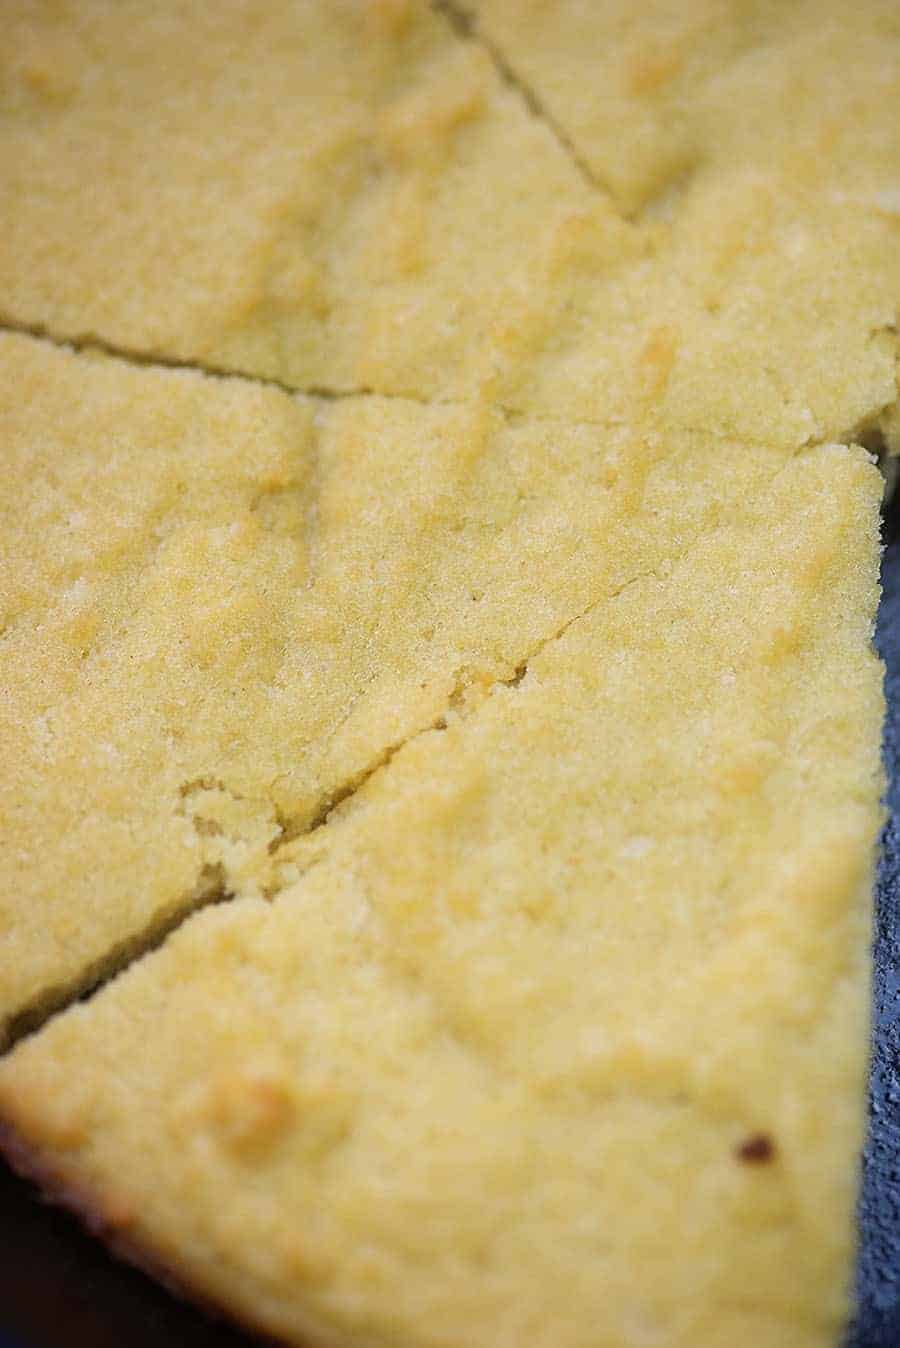 Low carb cornbread recipe! This low carb bread is beyond simple and the taste and texture are spot on! If you love cornbread, you have to try this with just 1 net carb per slice! #cornbread #keto #lowcarbbread